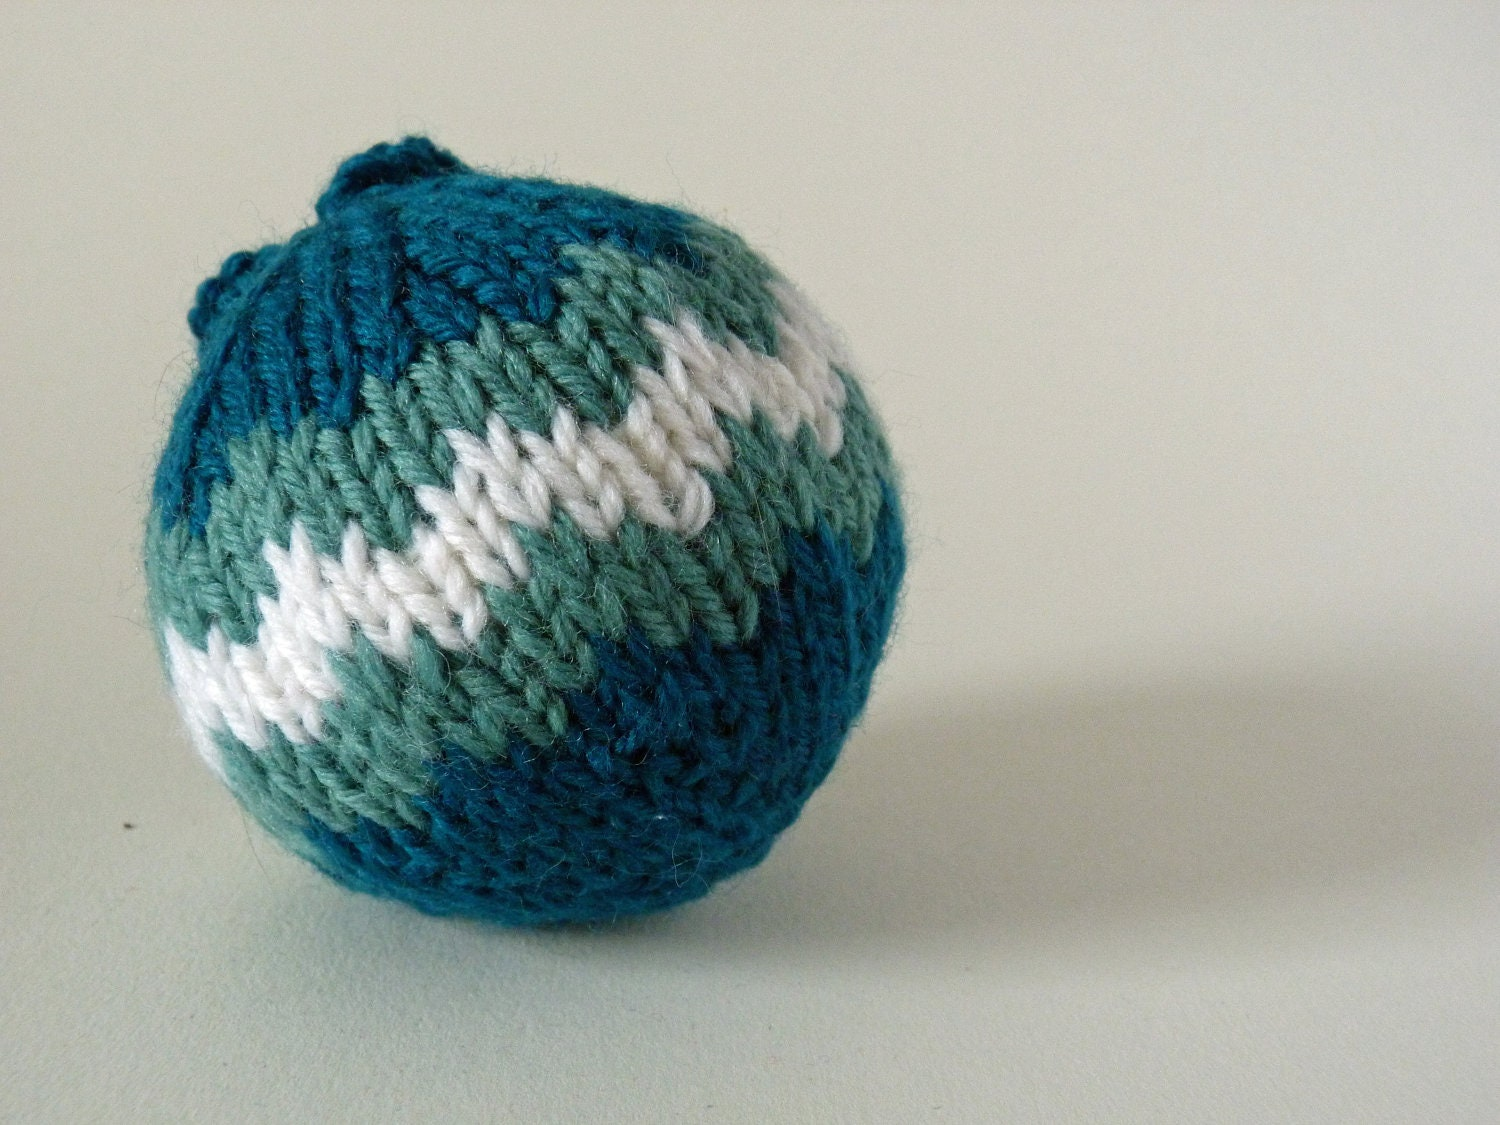 Turqoise Teal White Chevron Christmas Bauble Hand Knitted